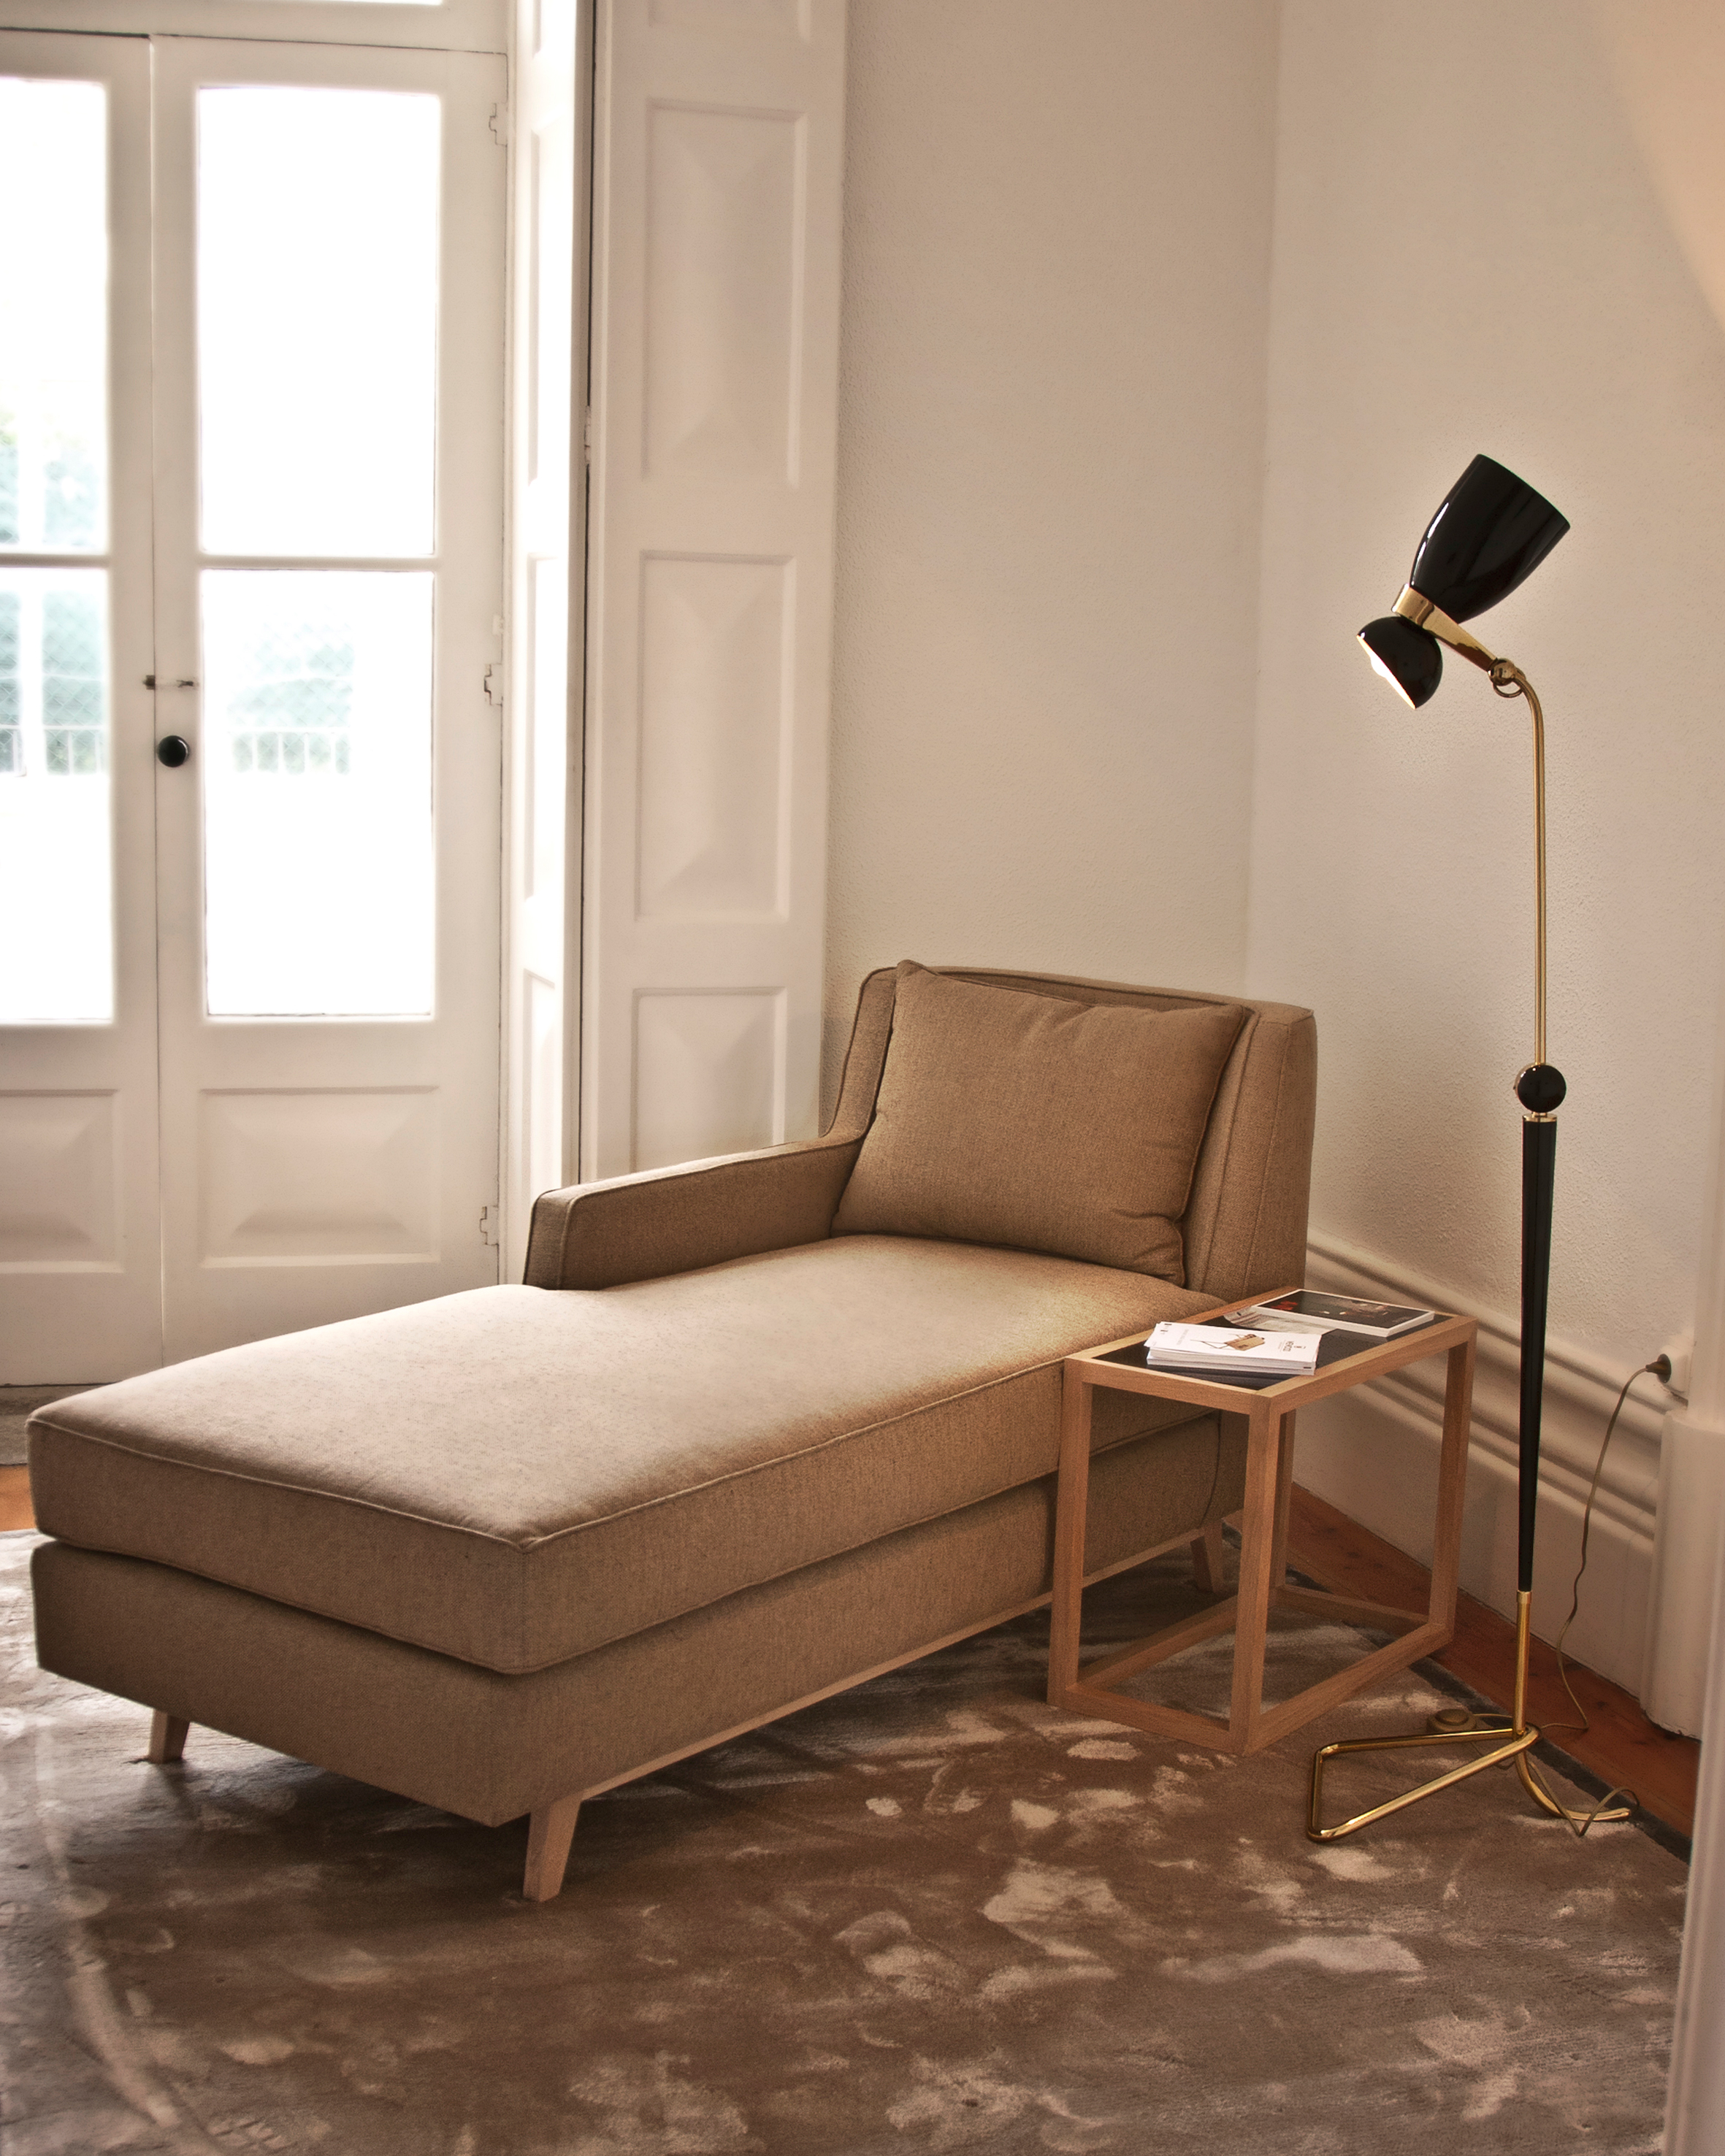 Why You Should Be Buying These Modern Floor Lamps 1 modern floor lamps Why You Should Be Buying These Modern Floor Lamps! Why You Should Be Buying These Modern Floor Lamps 1